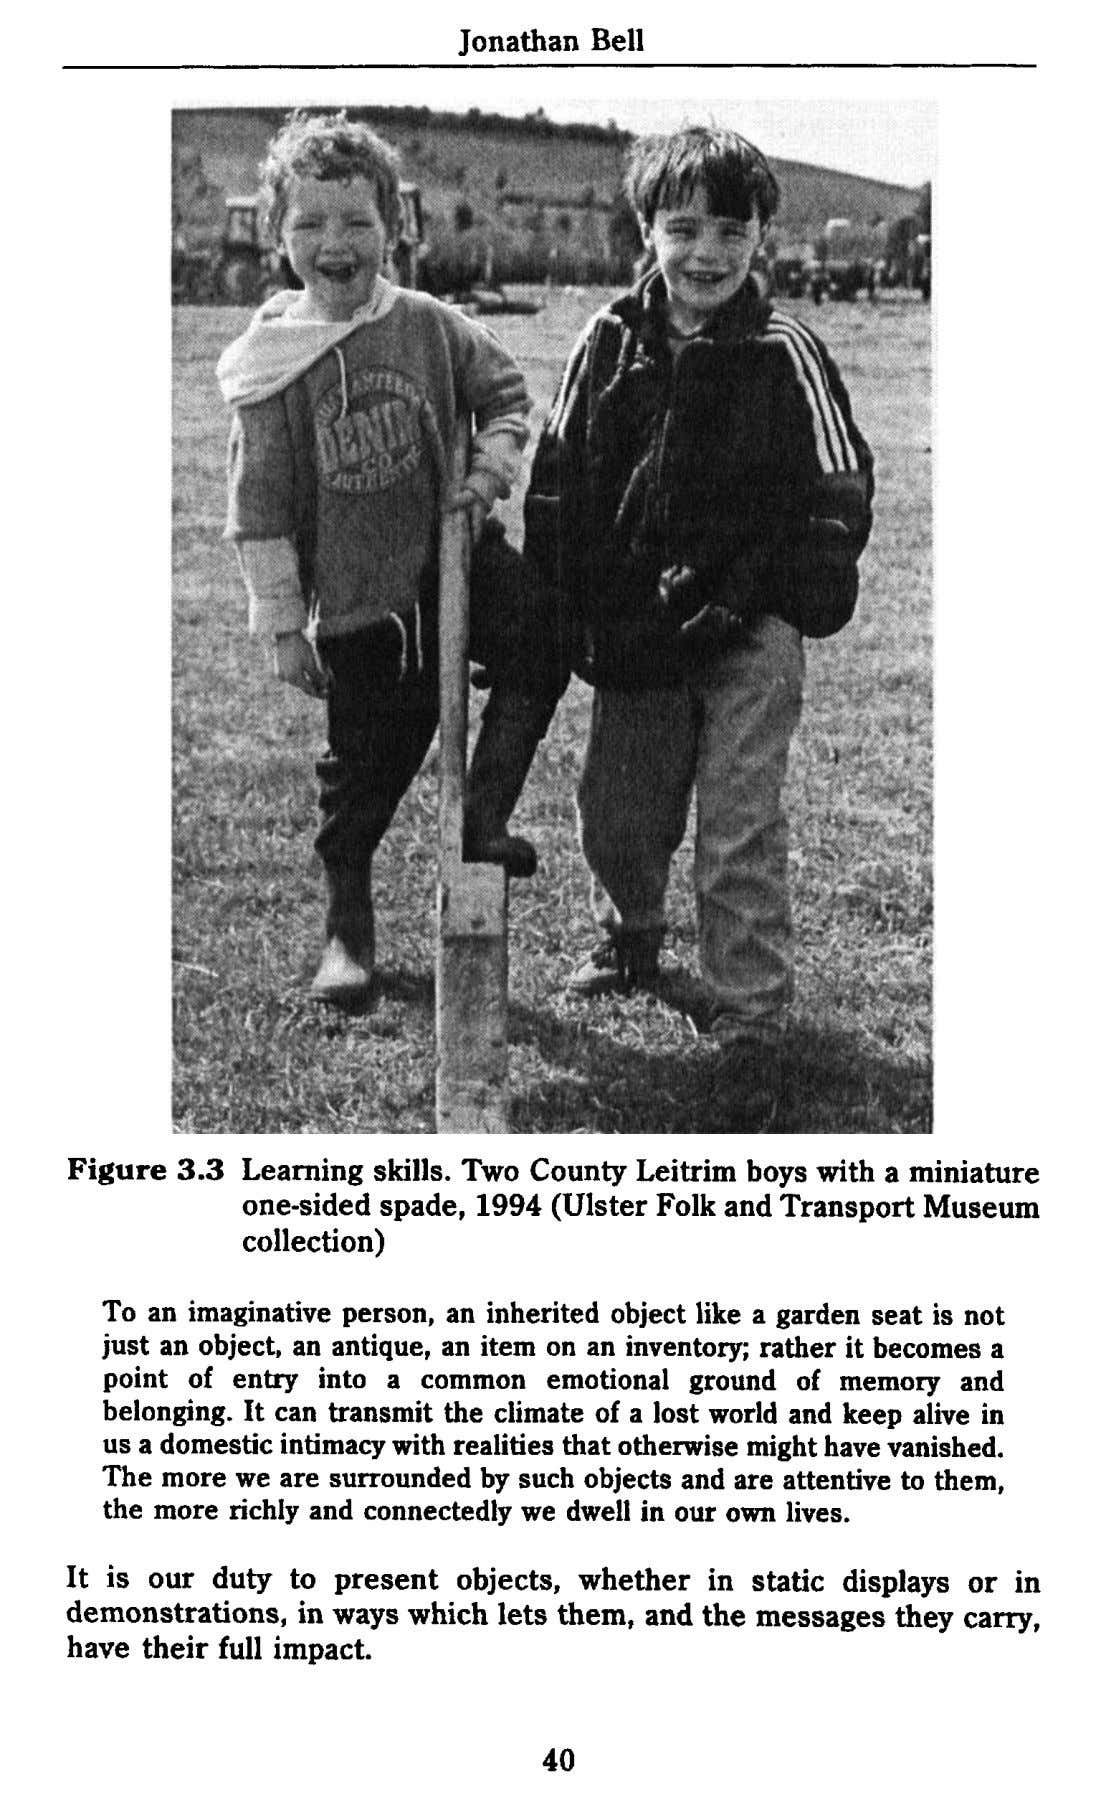 Jonathan Bell Figure 3.3 Learning skills. Two County Leitrim boys with a miniature one-sided spade,